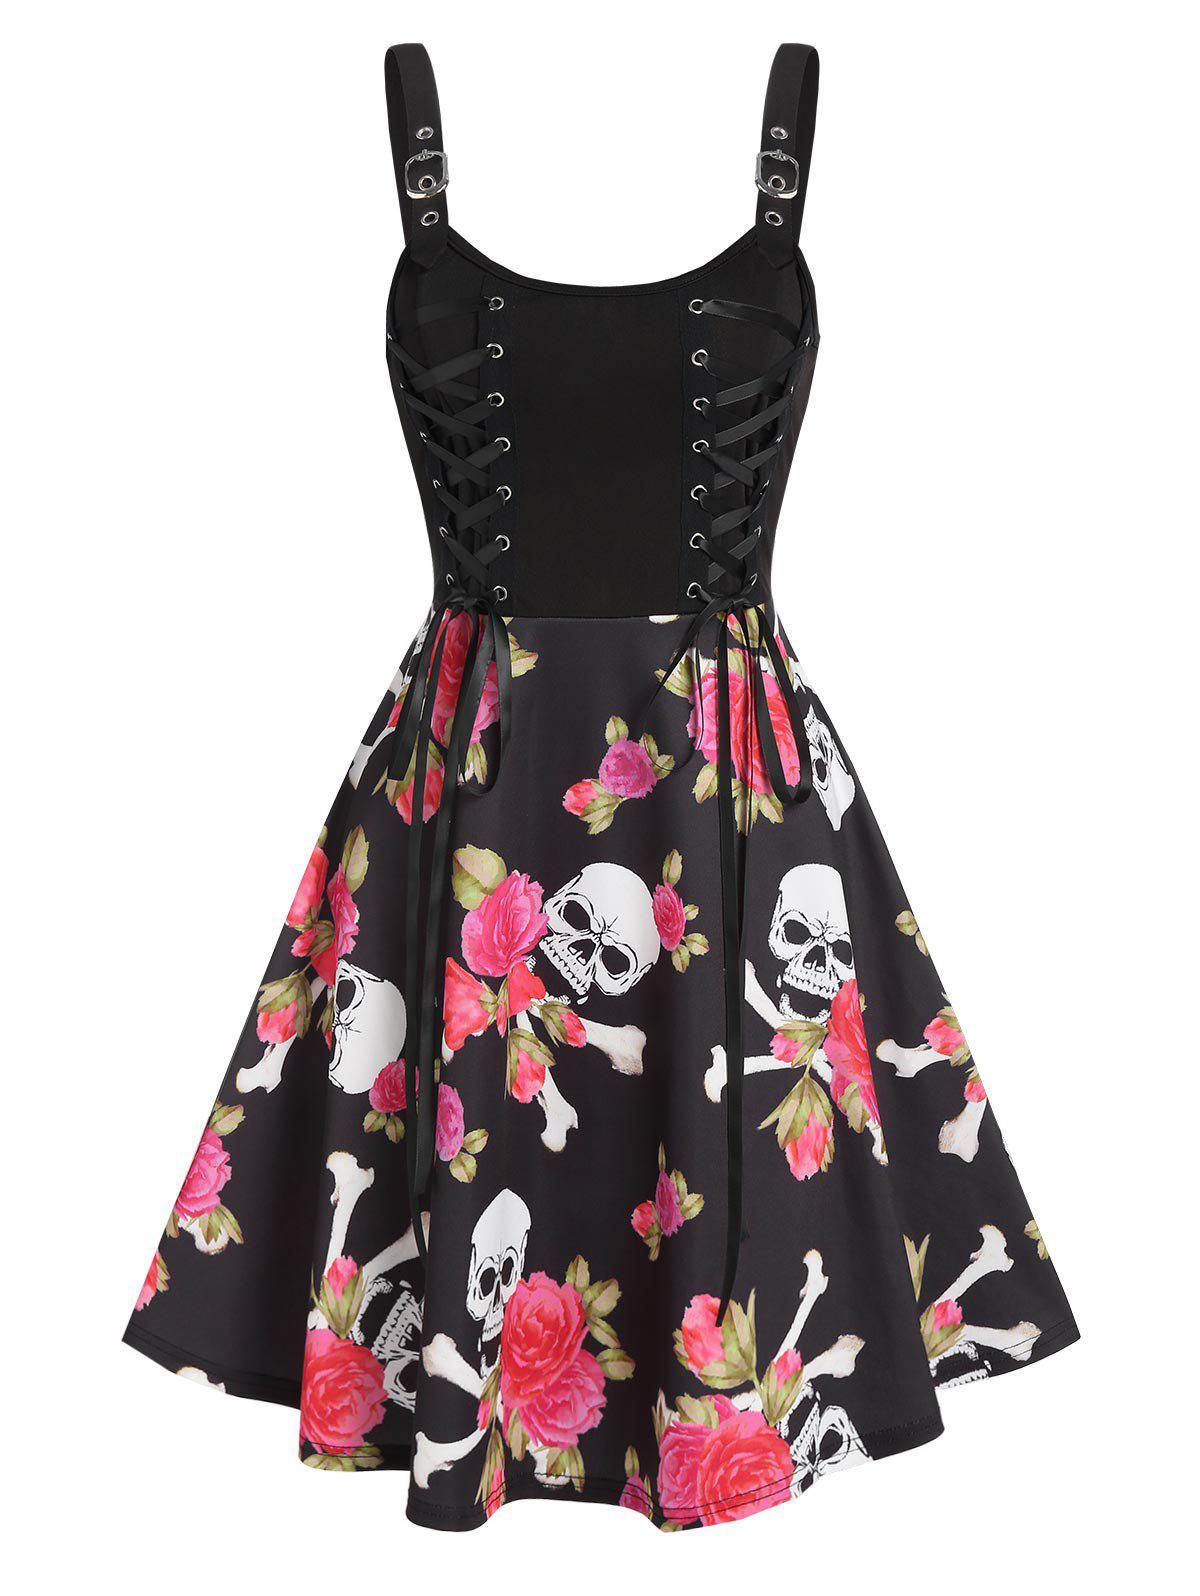 Floral Skull Print Lace Up High Waist Cami Dress - multicolor A 3XL